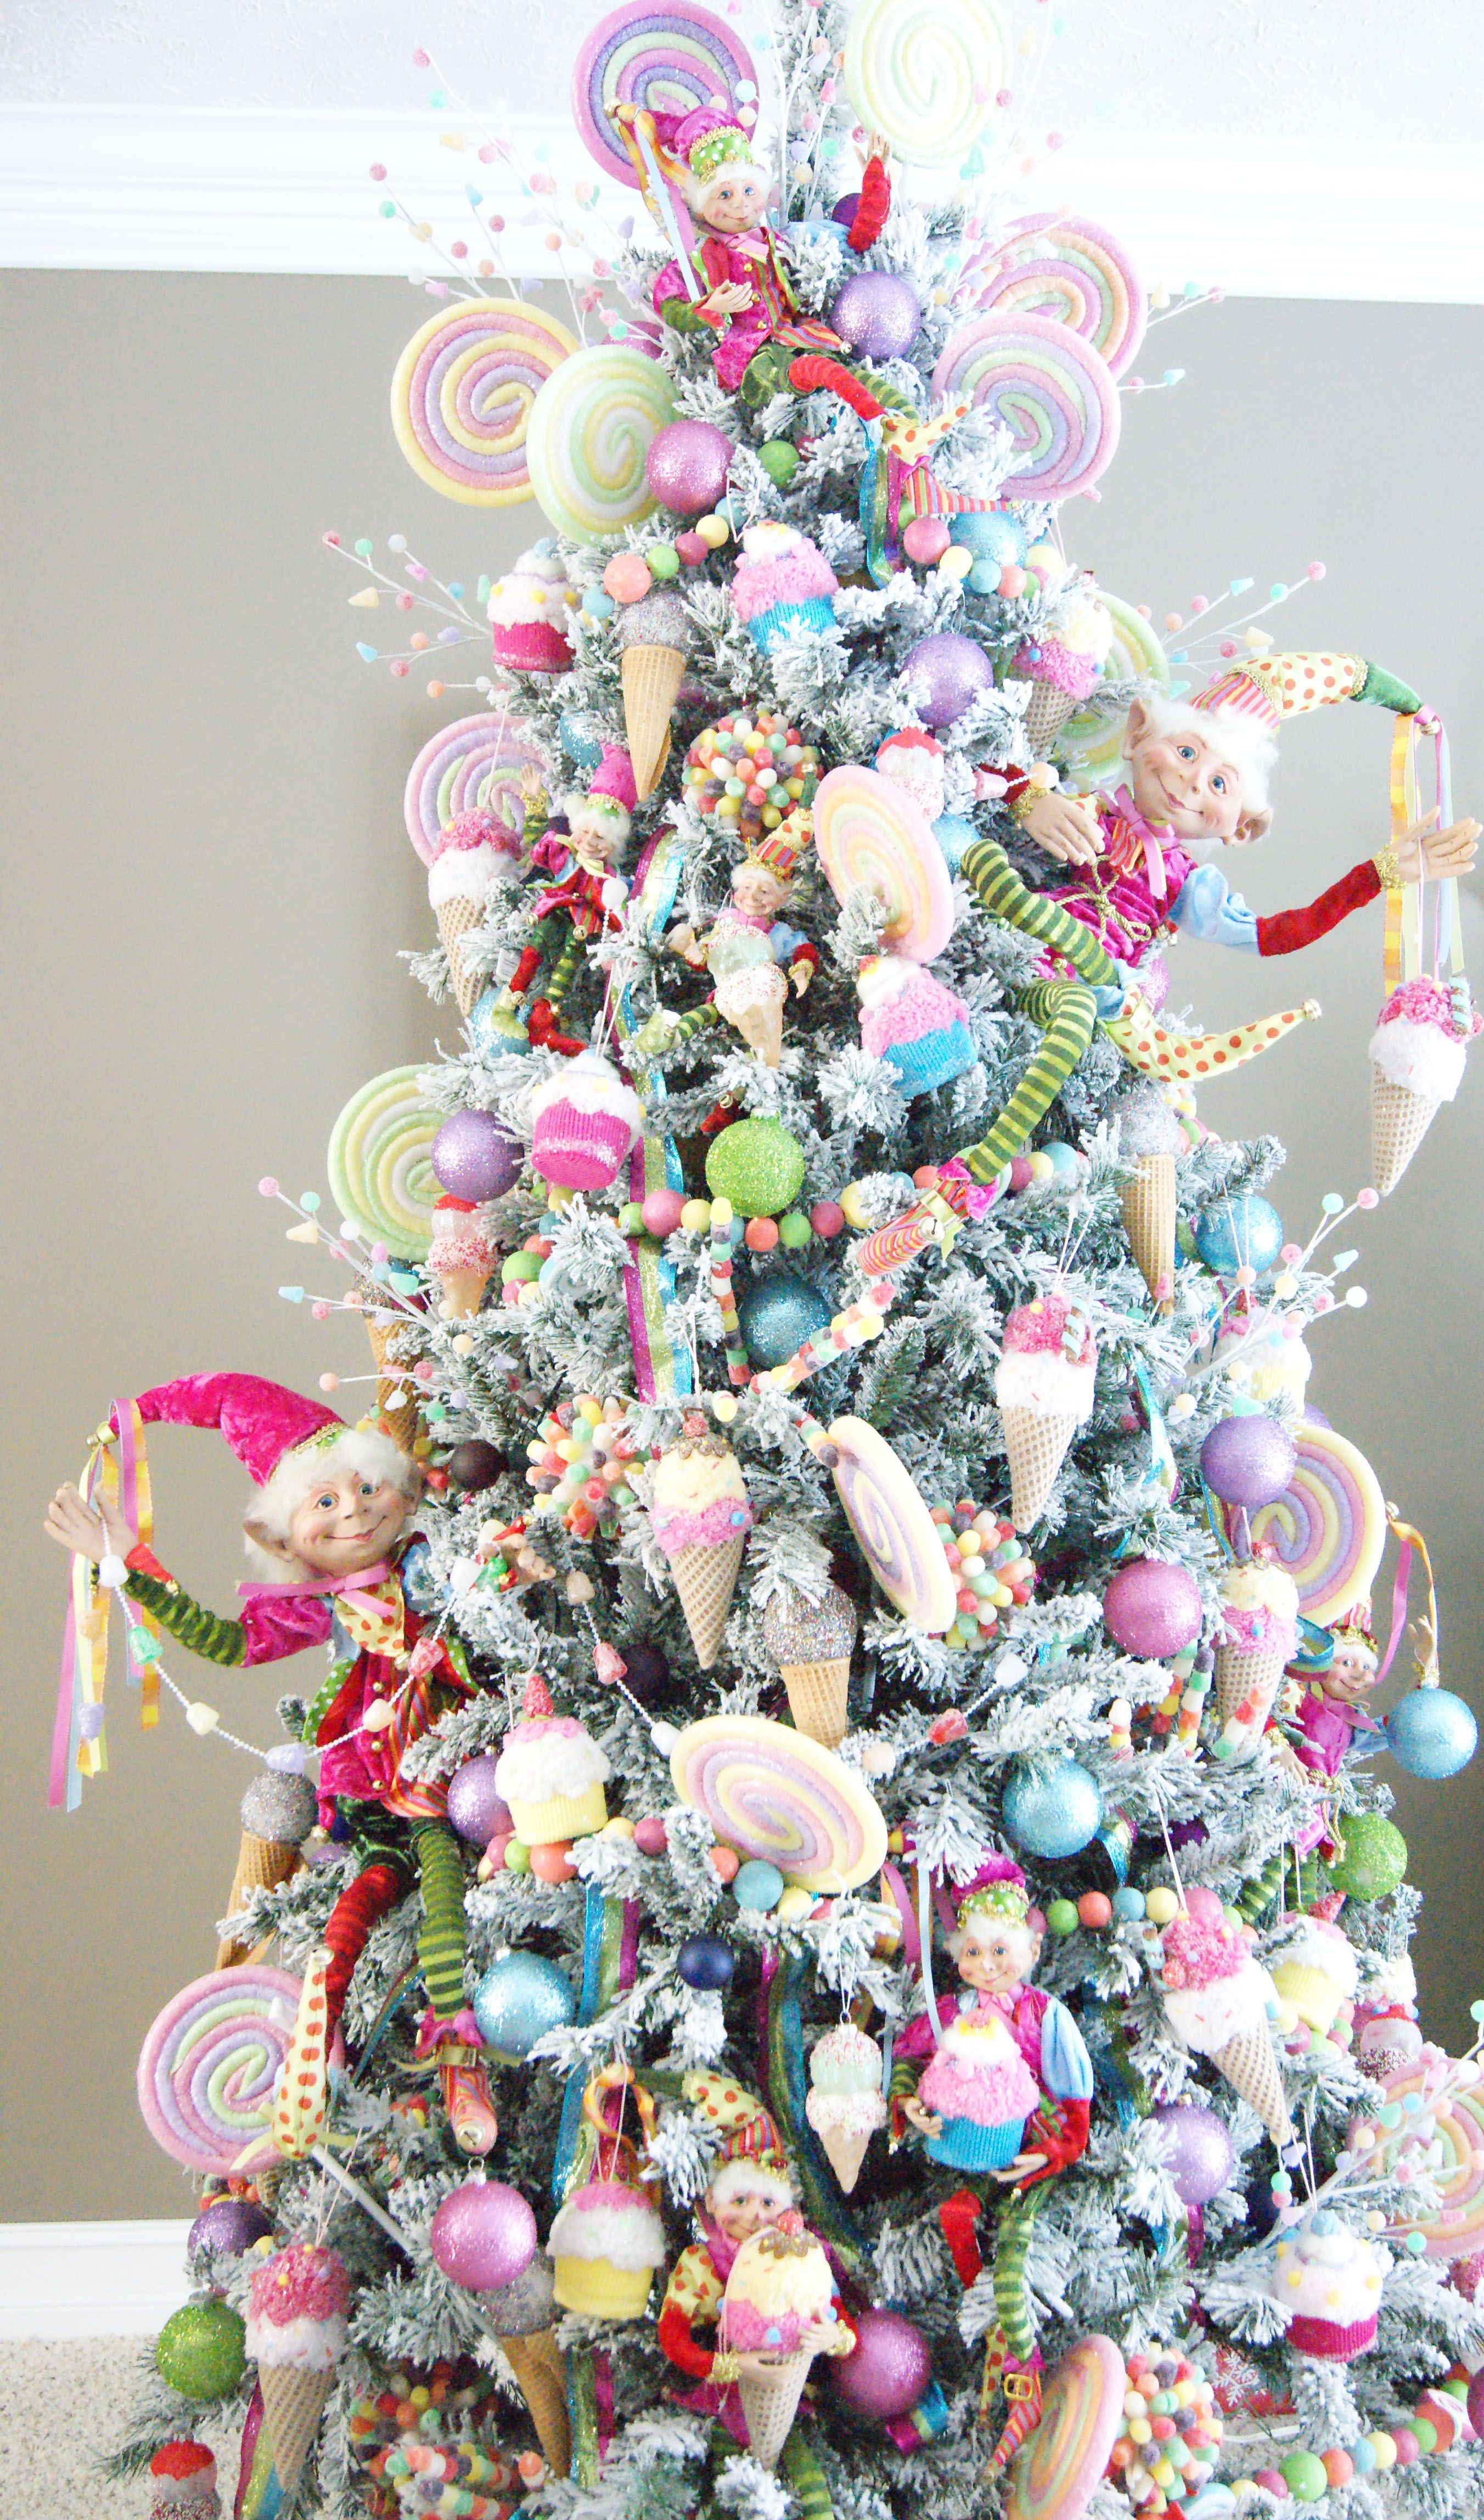 Candy Wonderland Tree Candytree Christmastree Candy Elves Lollipop Cupcake Icecream Candy Christmas Tree Christmas Tree Decorating Themes Pink Xmas